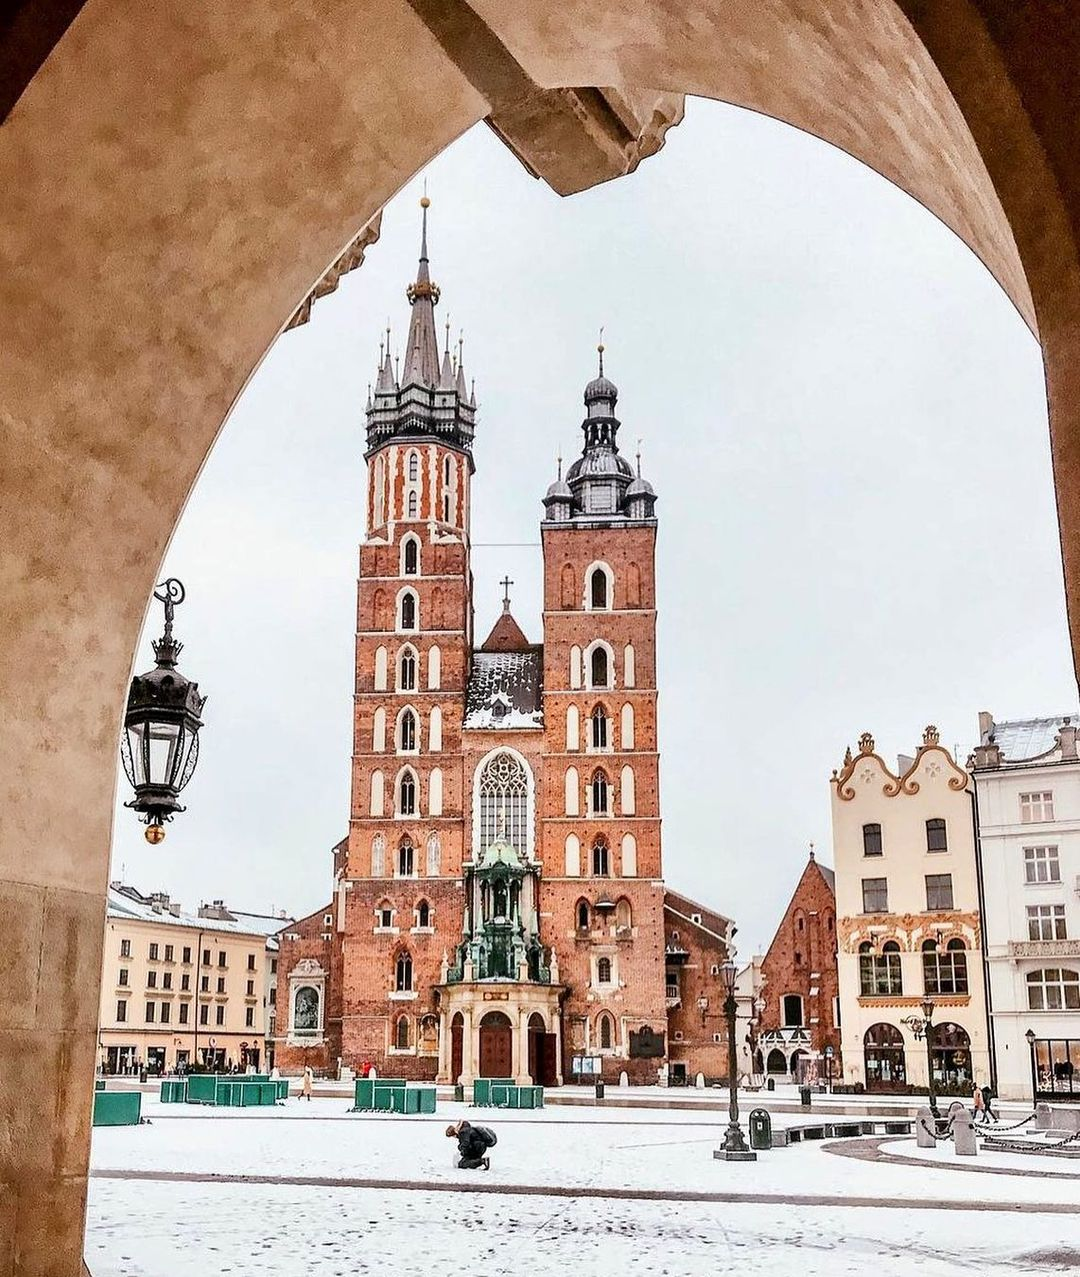 Krakow is one of the best destinations for teams